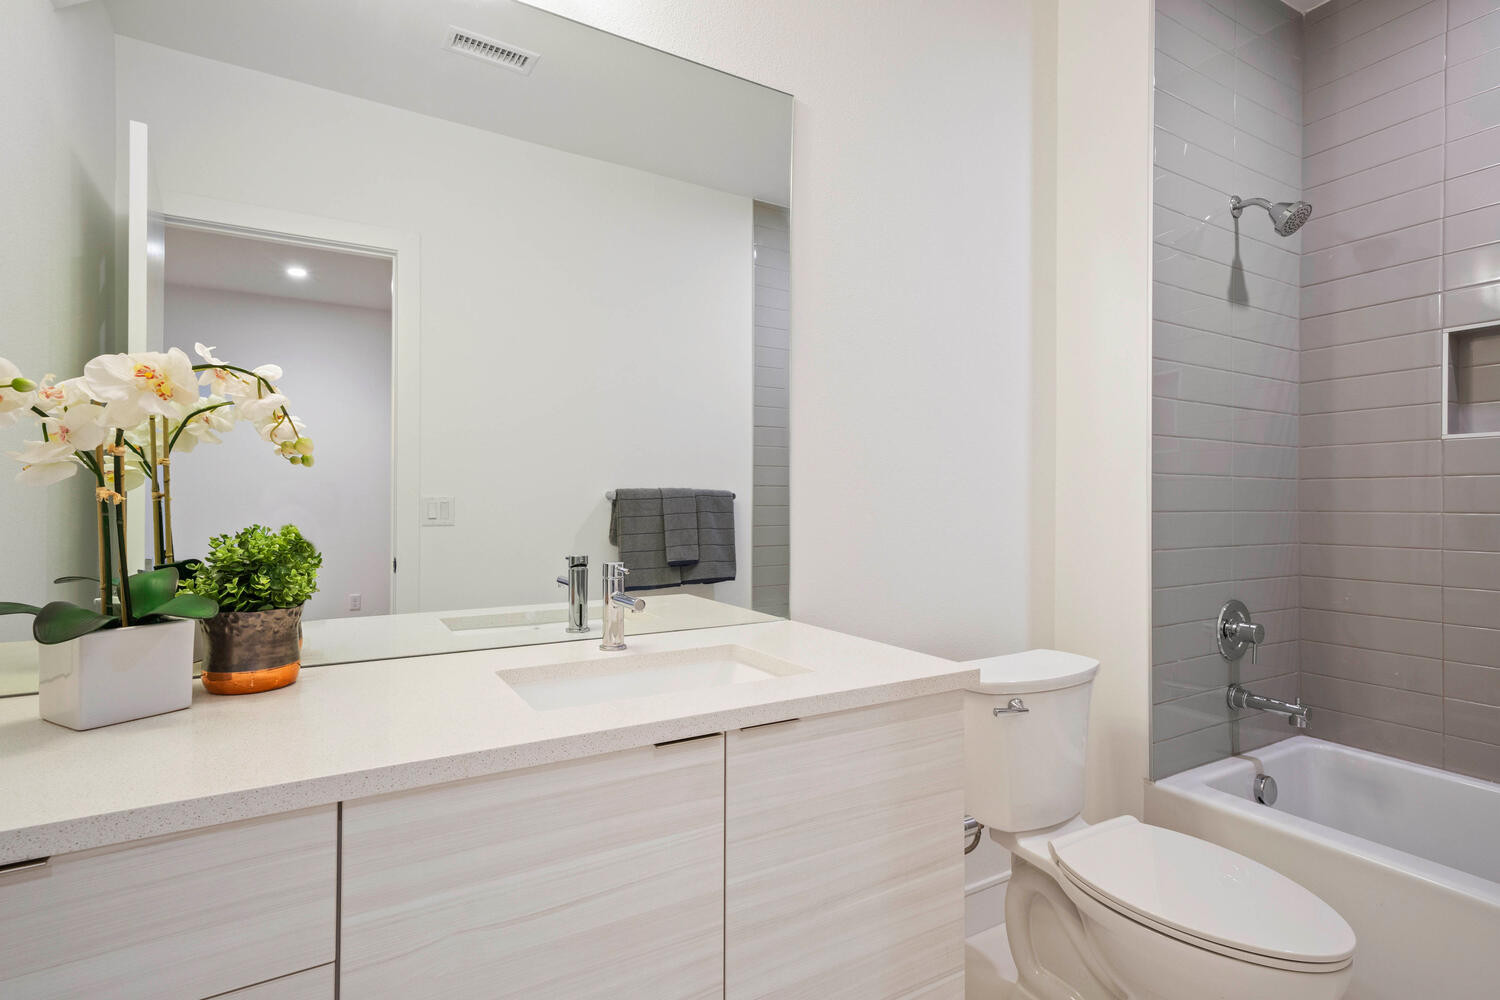 709 S Logan Street-large-036-038-Bathroo